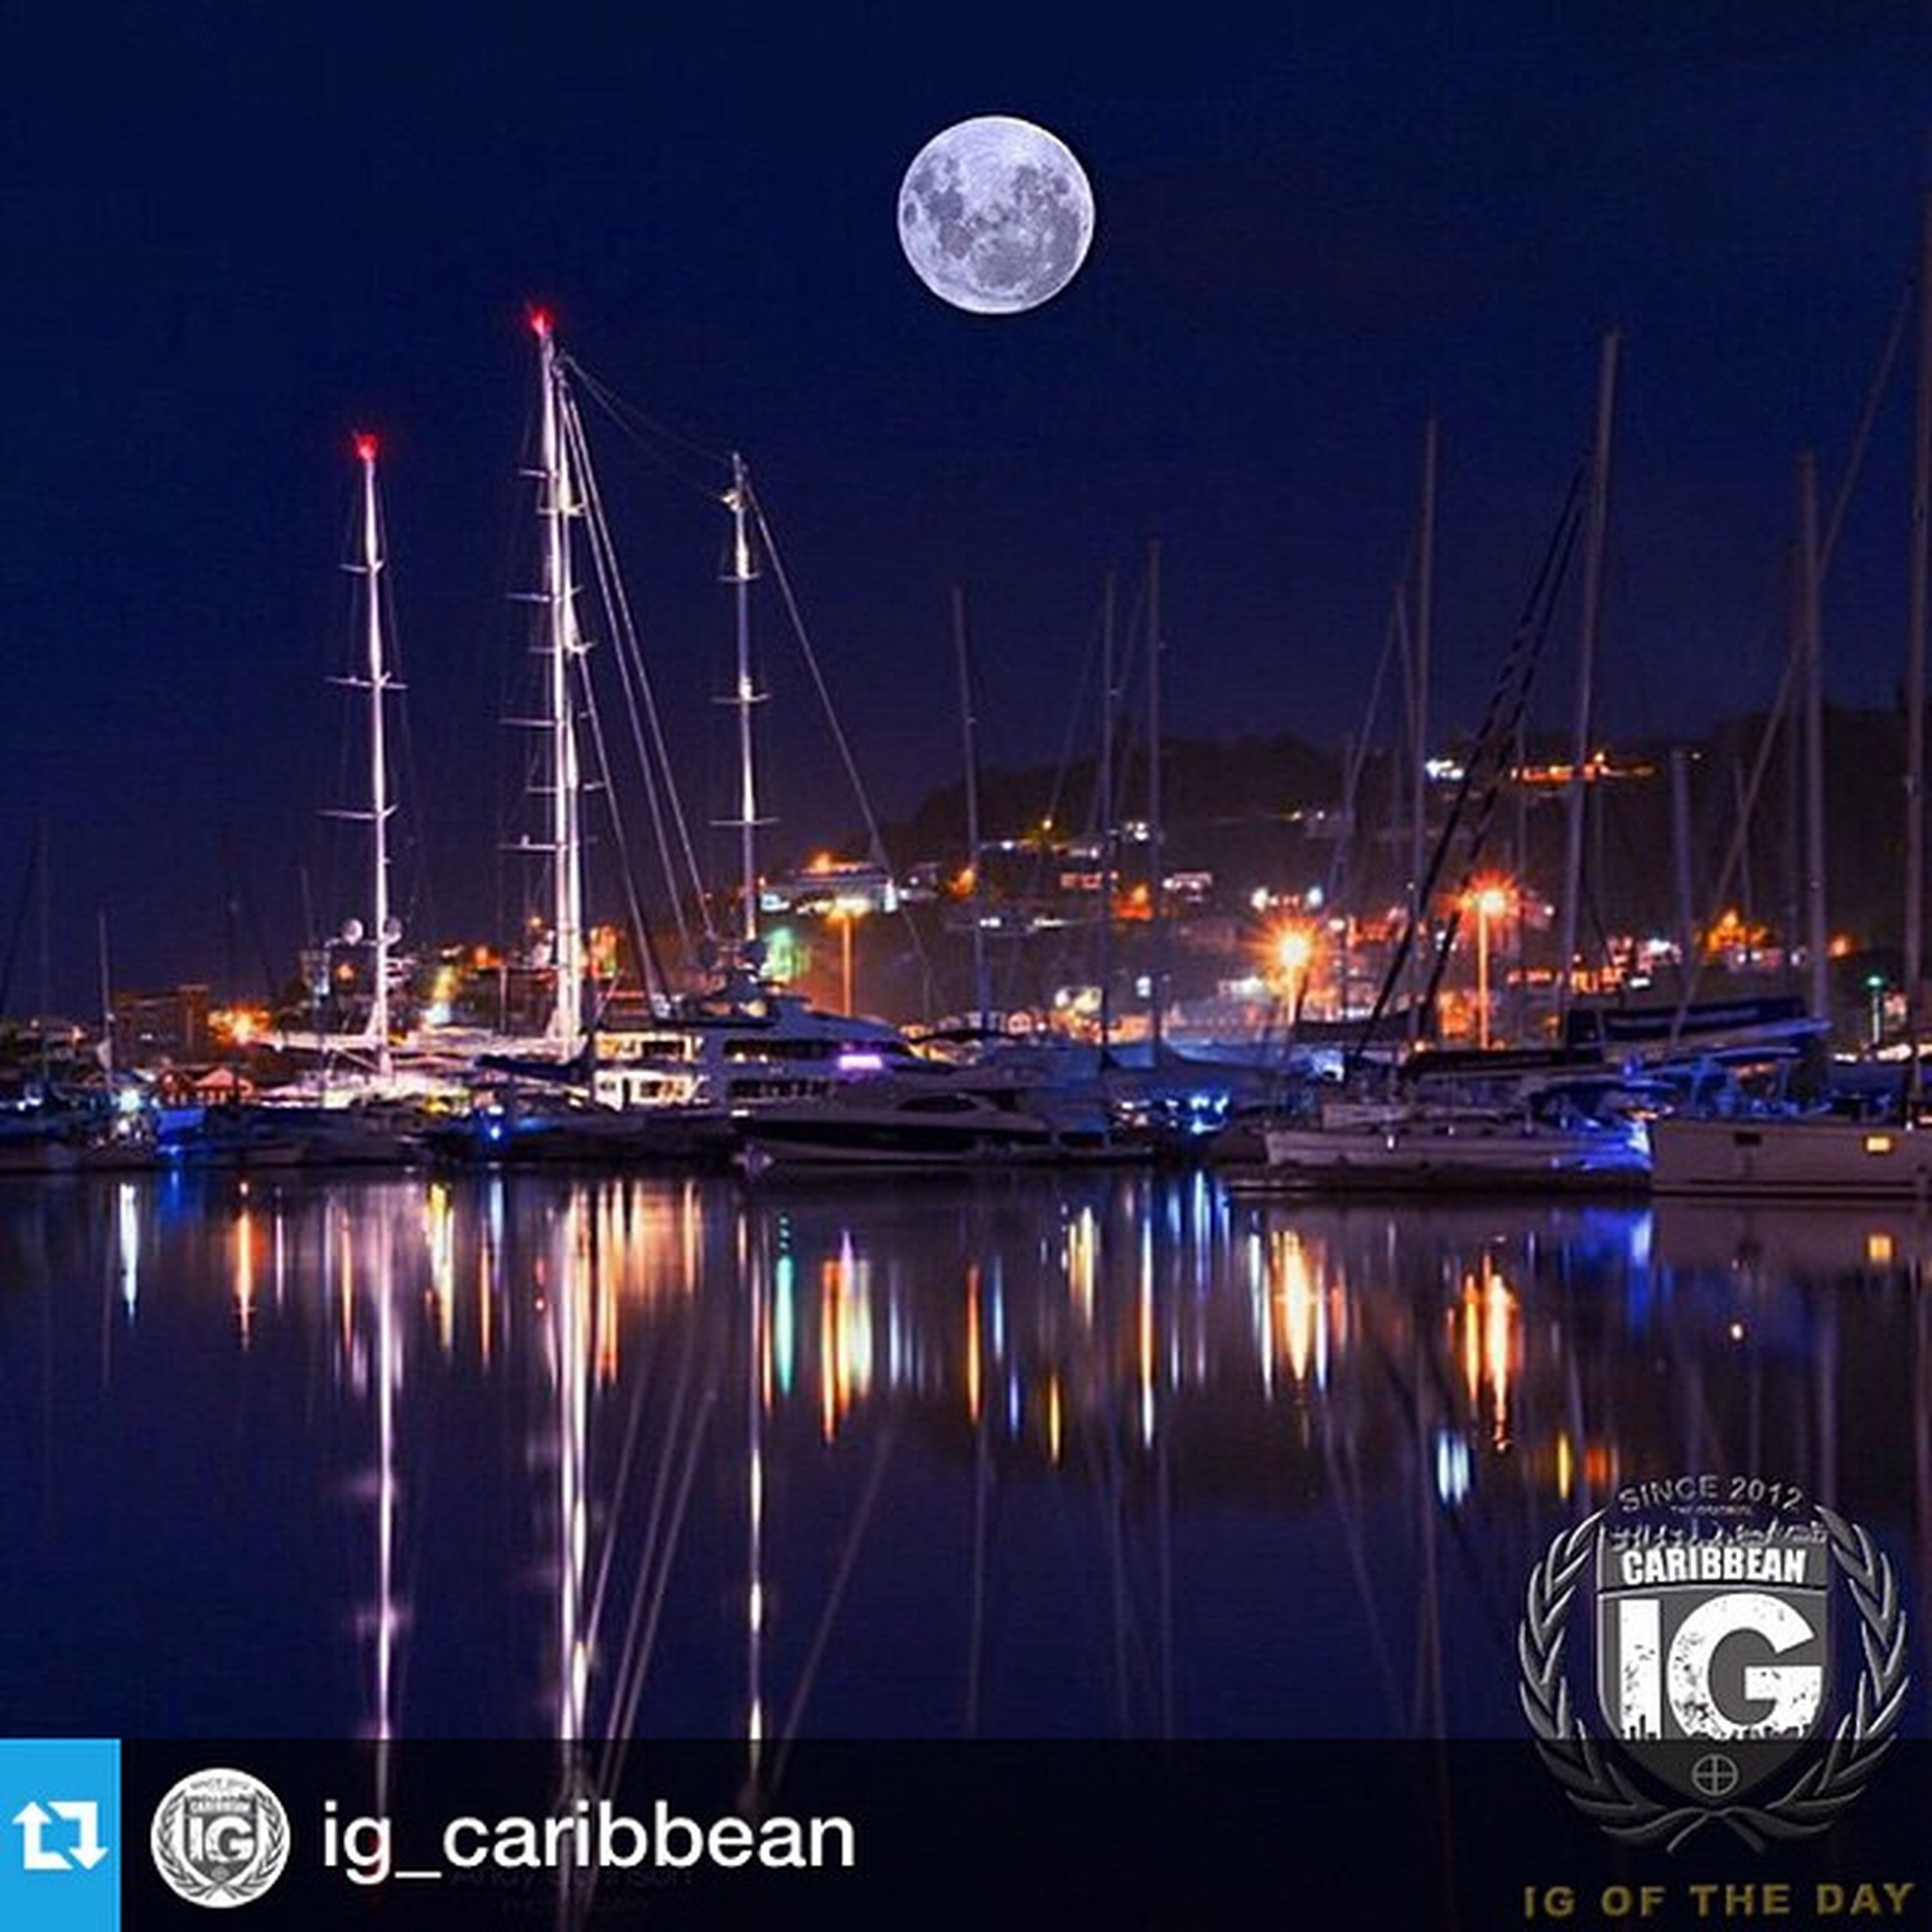 Repost from @ig_caribbean with @repostapp --- Present ⠀ I G O F T H E D A Y ⠀ P H O T O | @duppykankera P L A C E | Grenada S E L E C T E D B Y | @johnatanbreleur F E A T U R E D T A G | Ig_caribbean ⠀ F A C E B O O K | igcaribbean T W I T T E R | @ig_caribbean ⠀ C O U N T R Y R E Q U I R E D | If you want to join us and open an igworldclub account of your country or city, please write us or go to www.igworldclub.it - igworldclub@gmail.com ⠀ F O L L O W S U S | @Igworldclub @ig_caribbean @ig_northamerica @Ig_India @ig_martinique ⠀ T A G S | Igworldclub Phototag_it Shotaward WestIndies Martinique Caribbean Picoftheday Madinina All_shots World_shotz Ig_capture Love_natura Photooftheday Grenada Igd_100214